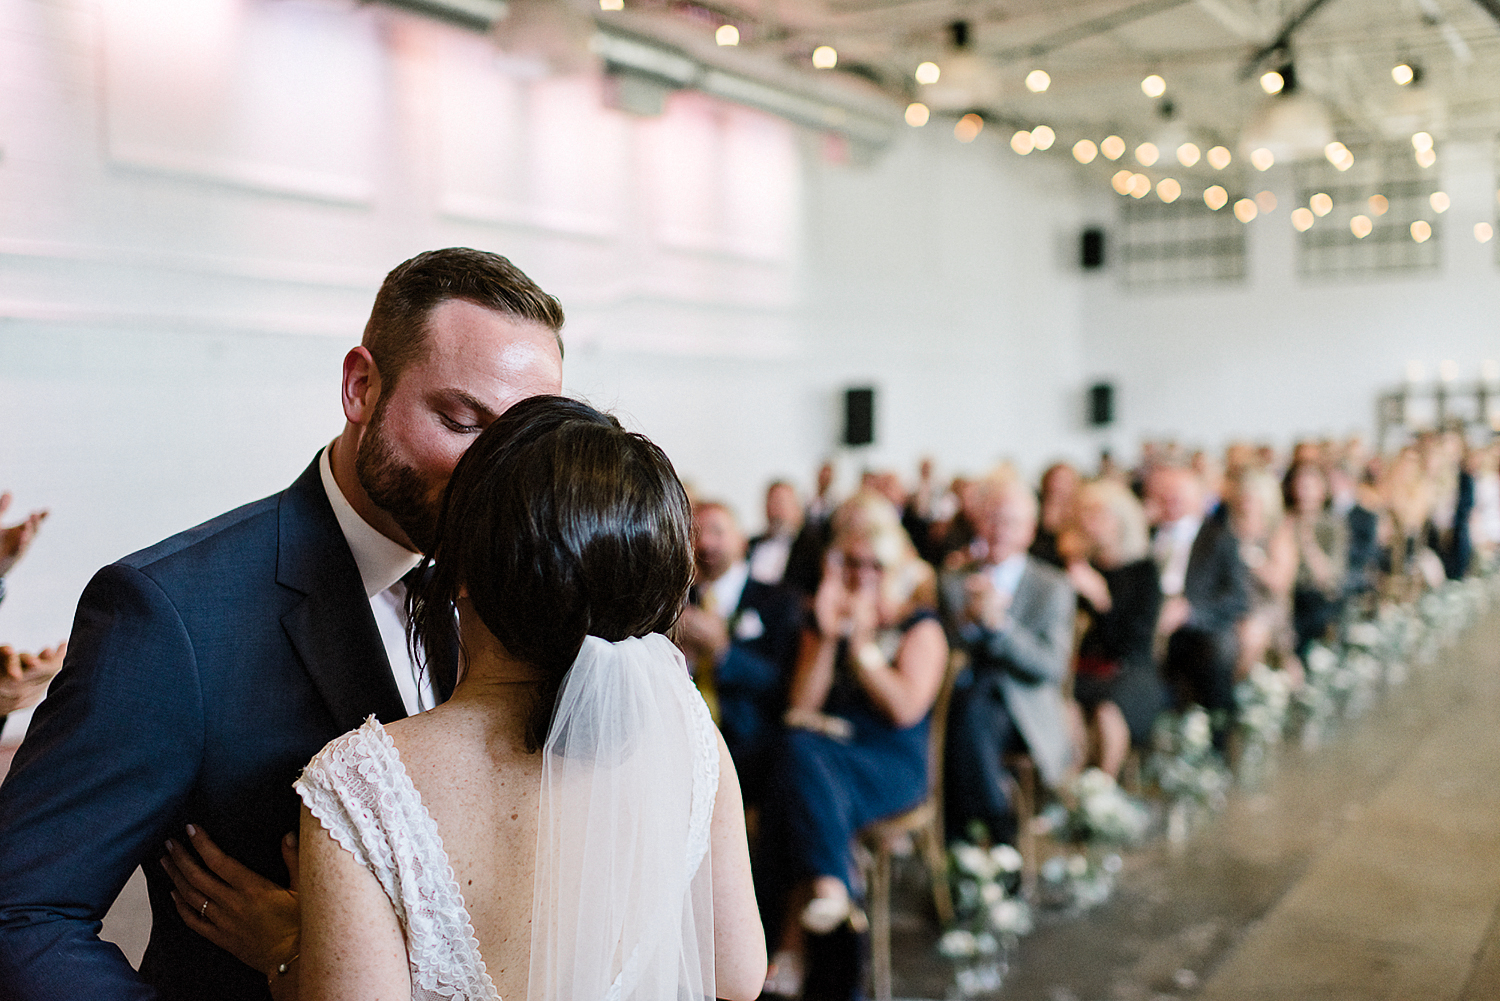 Best-Wedding-photographers-Toronto-NAtural-Candid-wedding-photography-Airship37-Wedding-Ceremony-Entrance-Candid-Moment-Bride-and-GRoom-First-Kiss.jpg